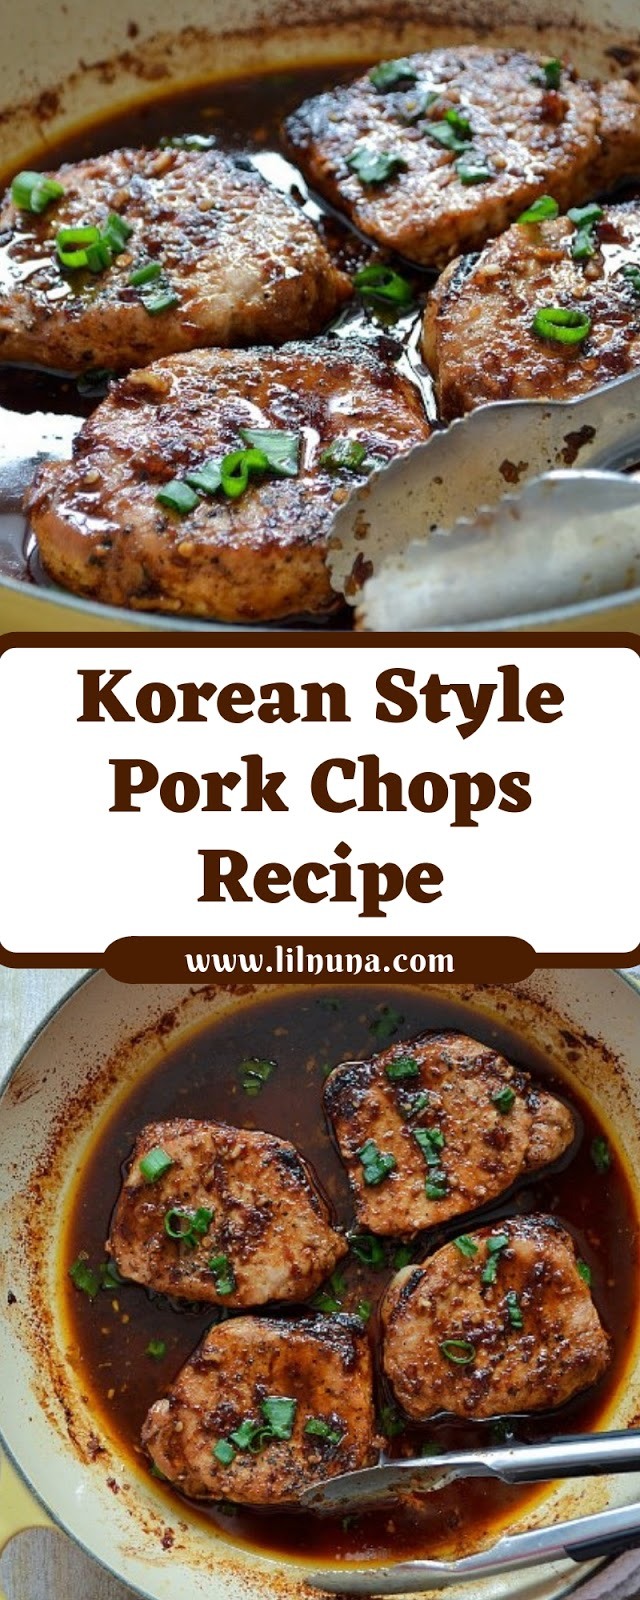 Korean Style Pork Chops Recipe